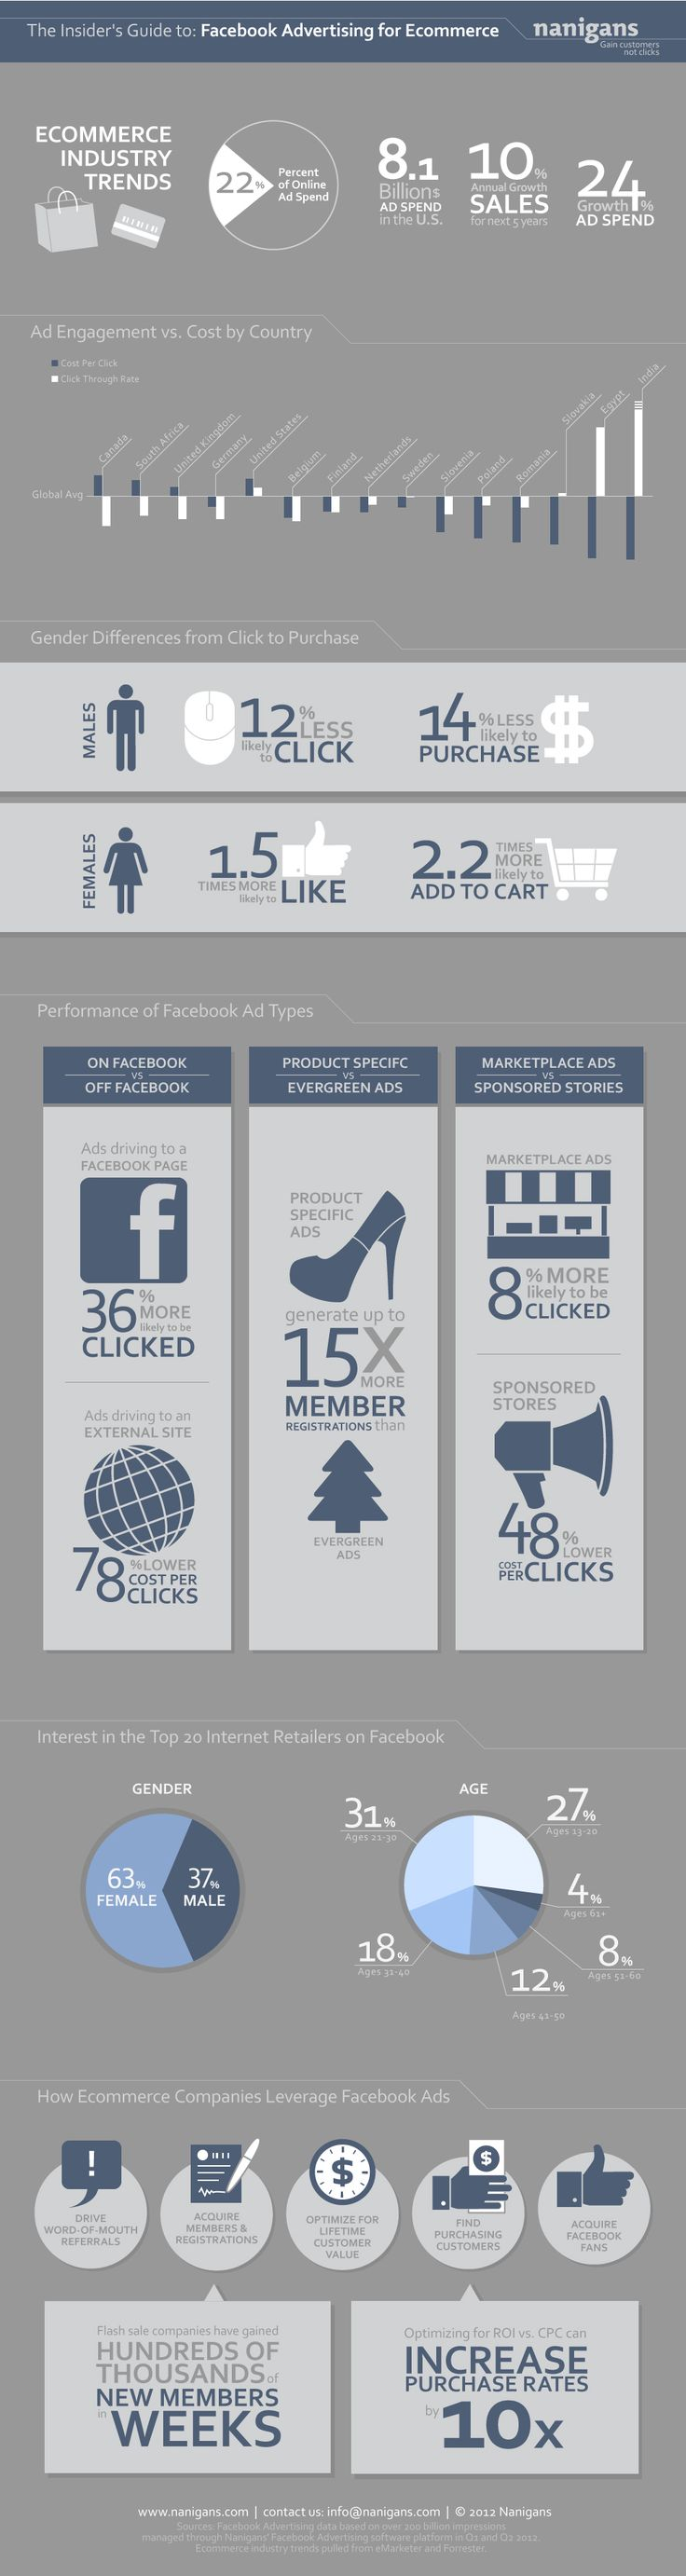 Facebook Advertising for eCommerceSocial Media Marketing, Retail Advertis, E-Commerce, Facebook Advertising, Socialmedia, Facebook Infographic, Facebook Marketing, Facebook Ads, Ecommerce Infographic